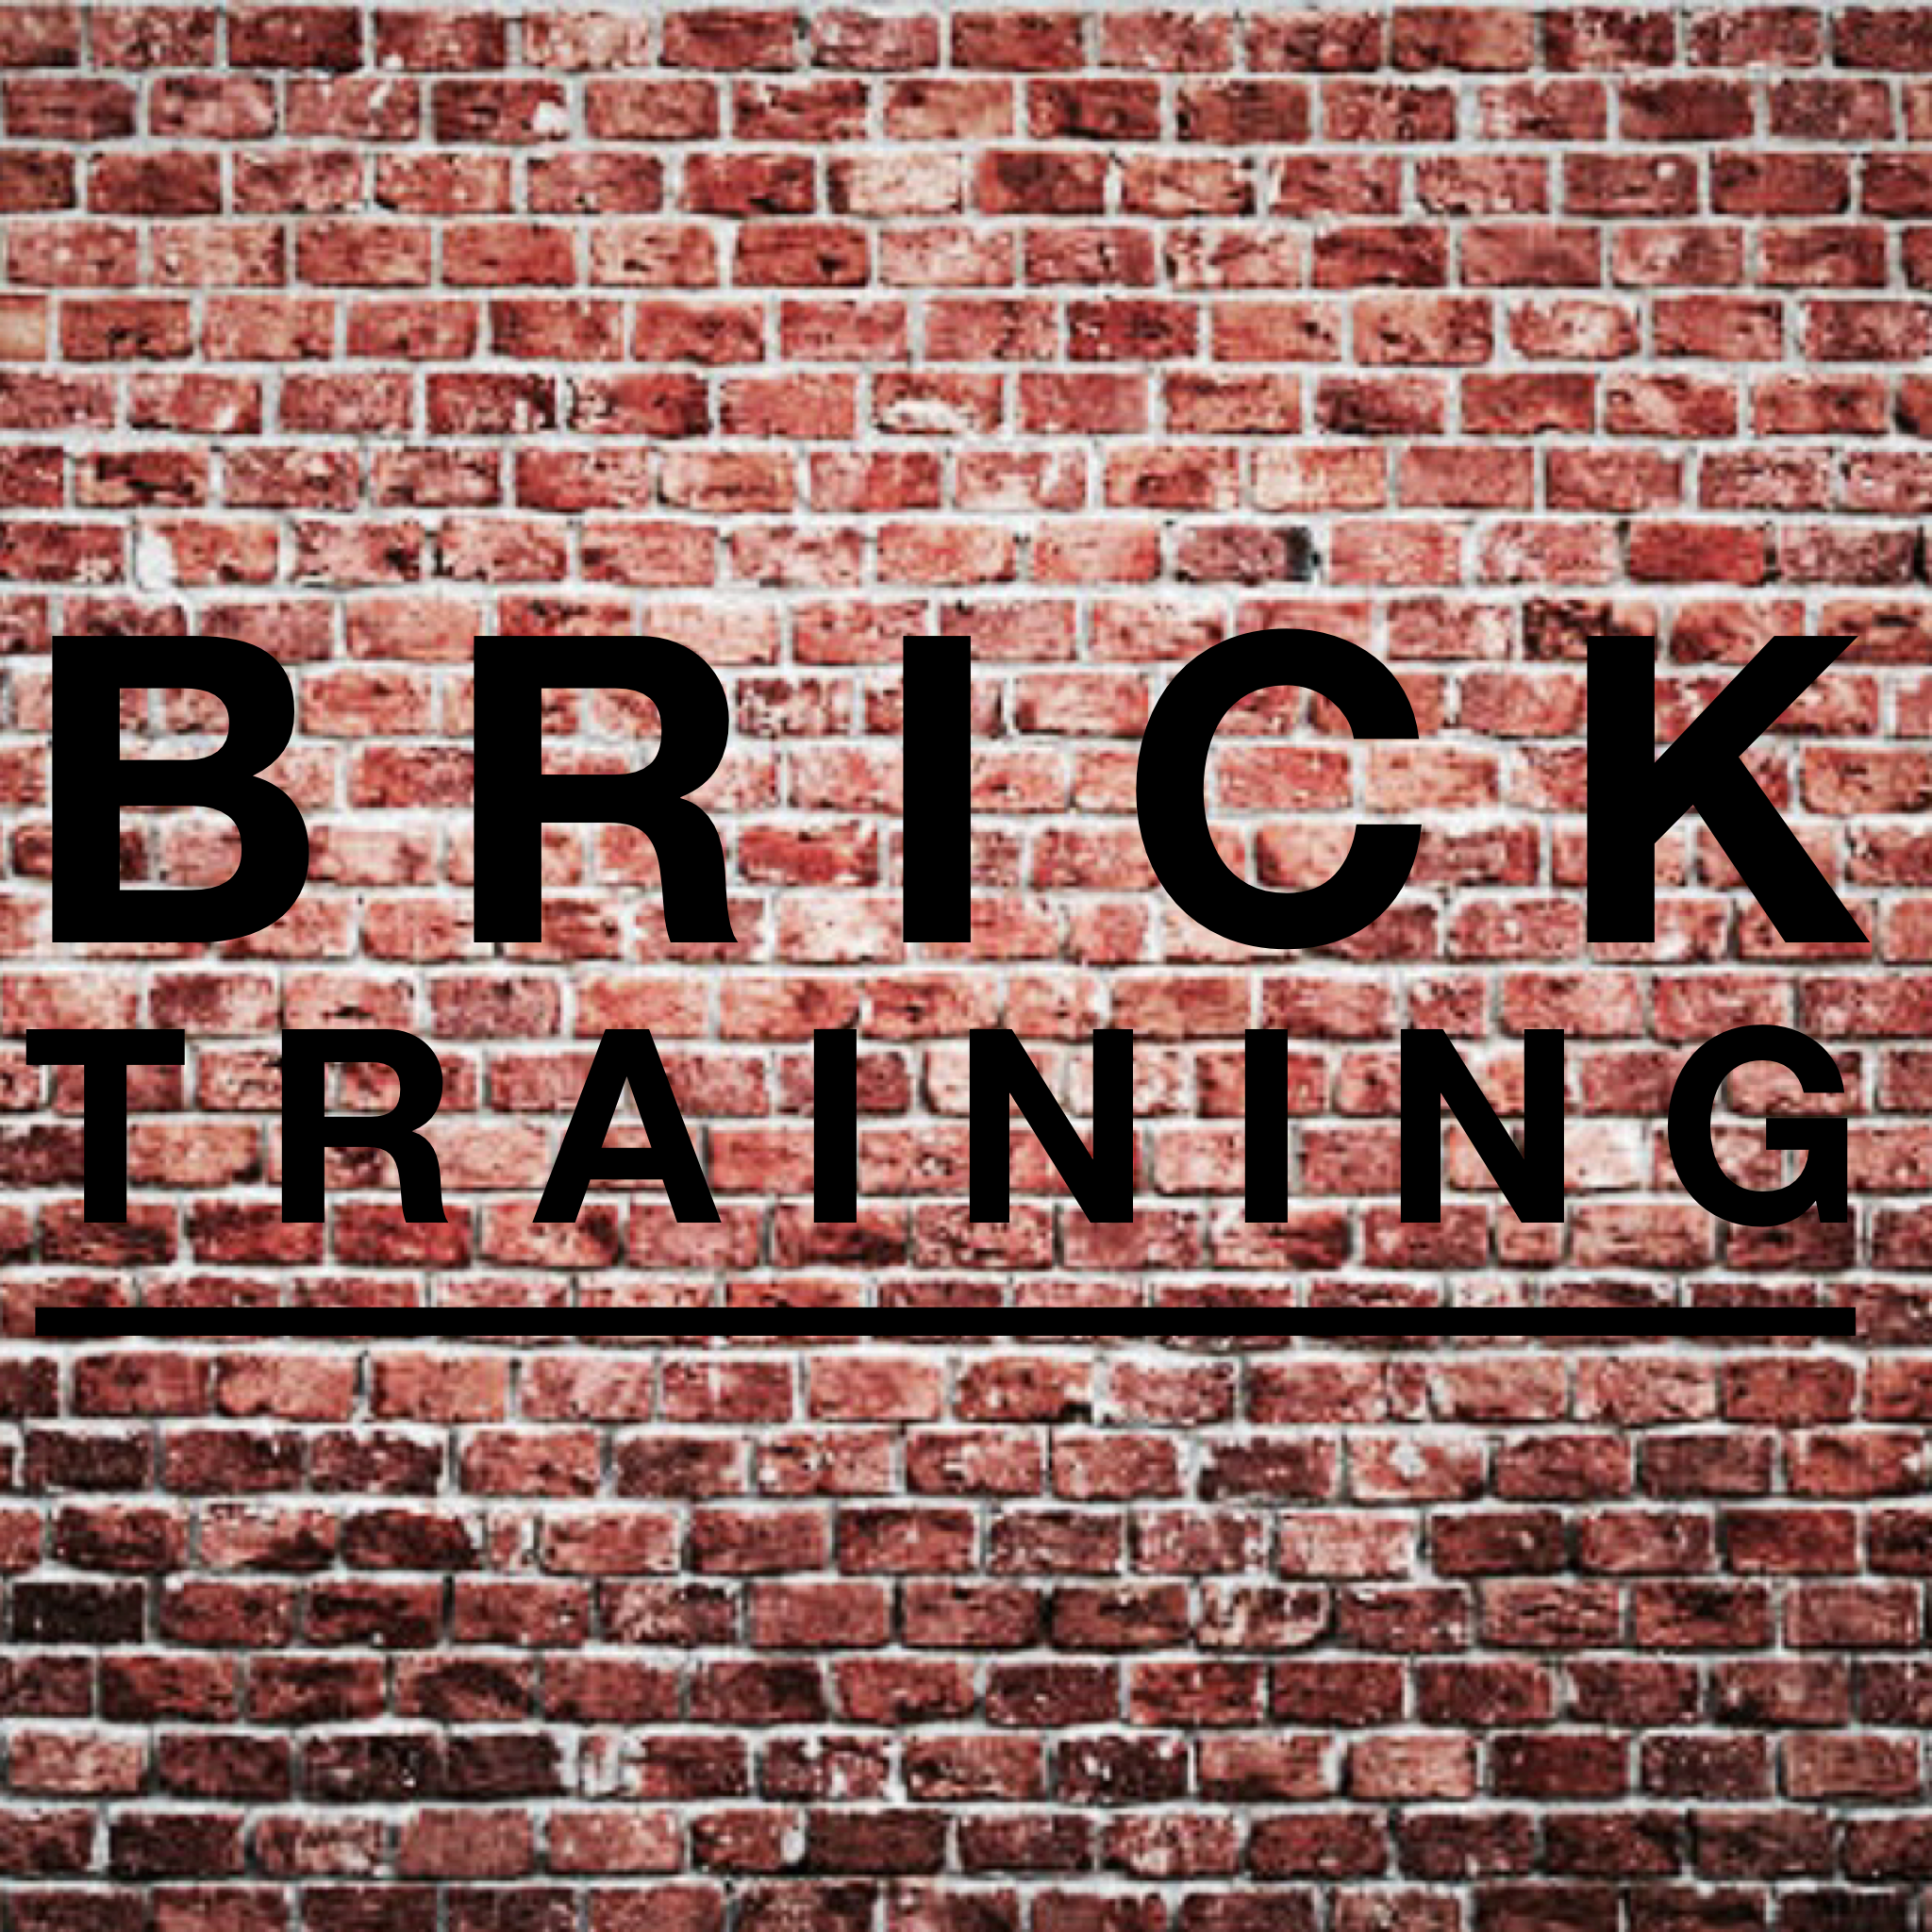 Brick-Triathlon-Training